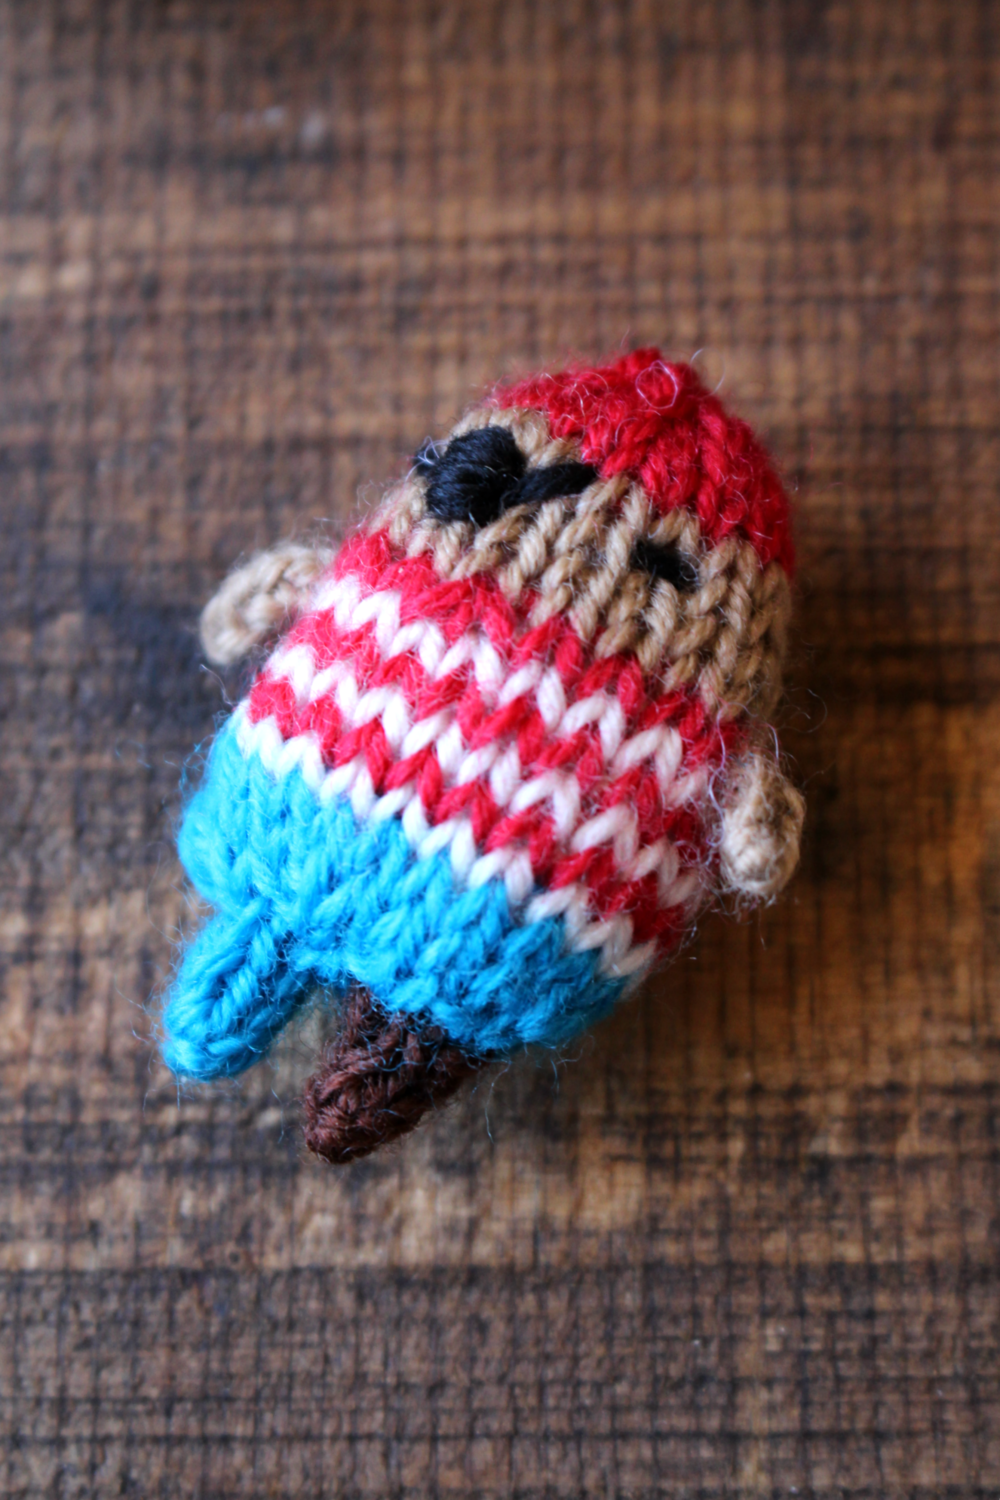 Blog never not knitting it may seem odd to share photos of a tiny knitted pirate in a post about my dads death but this little guy just makes me smile fandeluxe Gallery